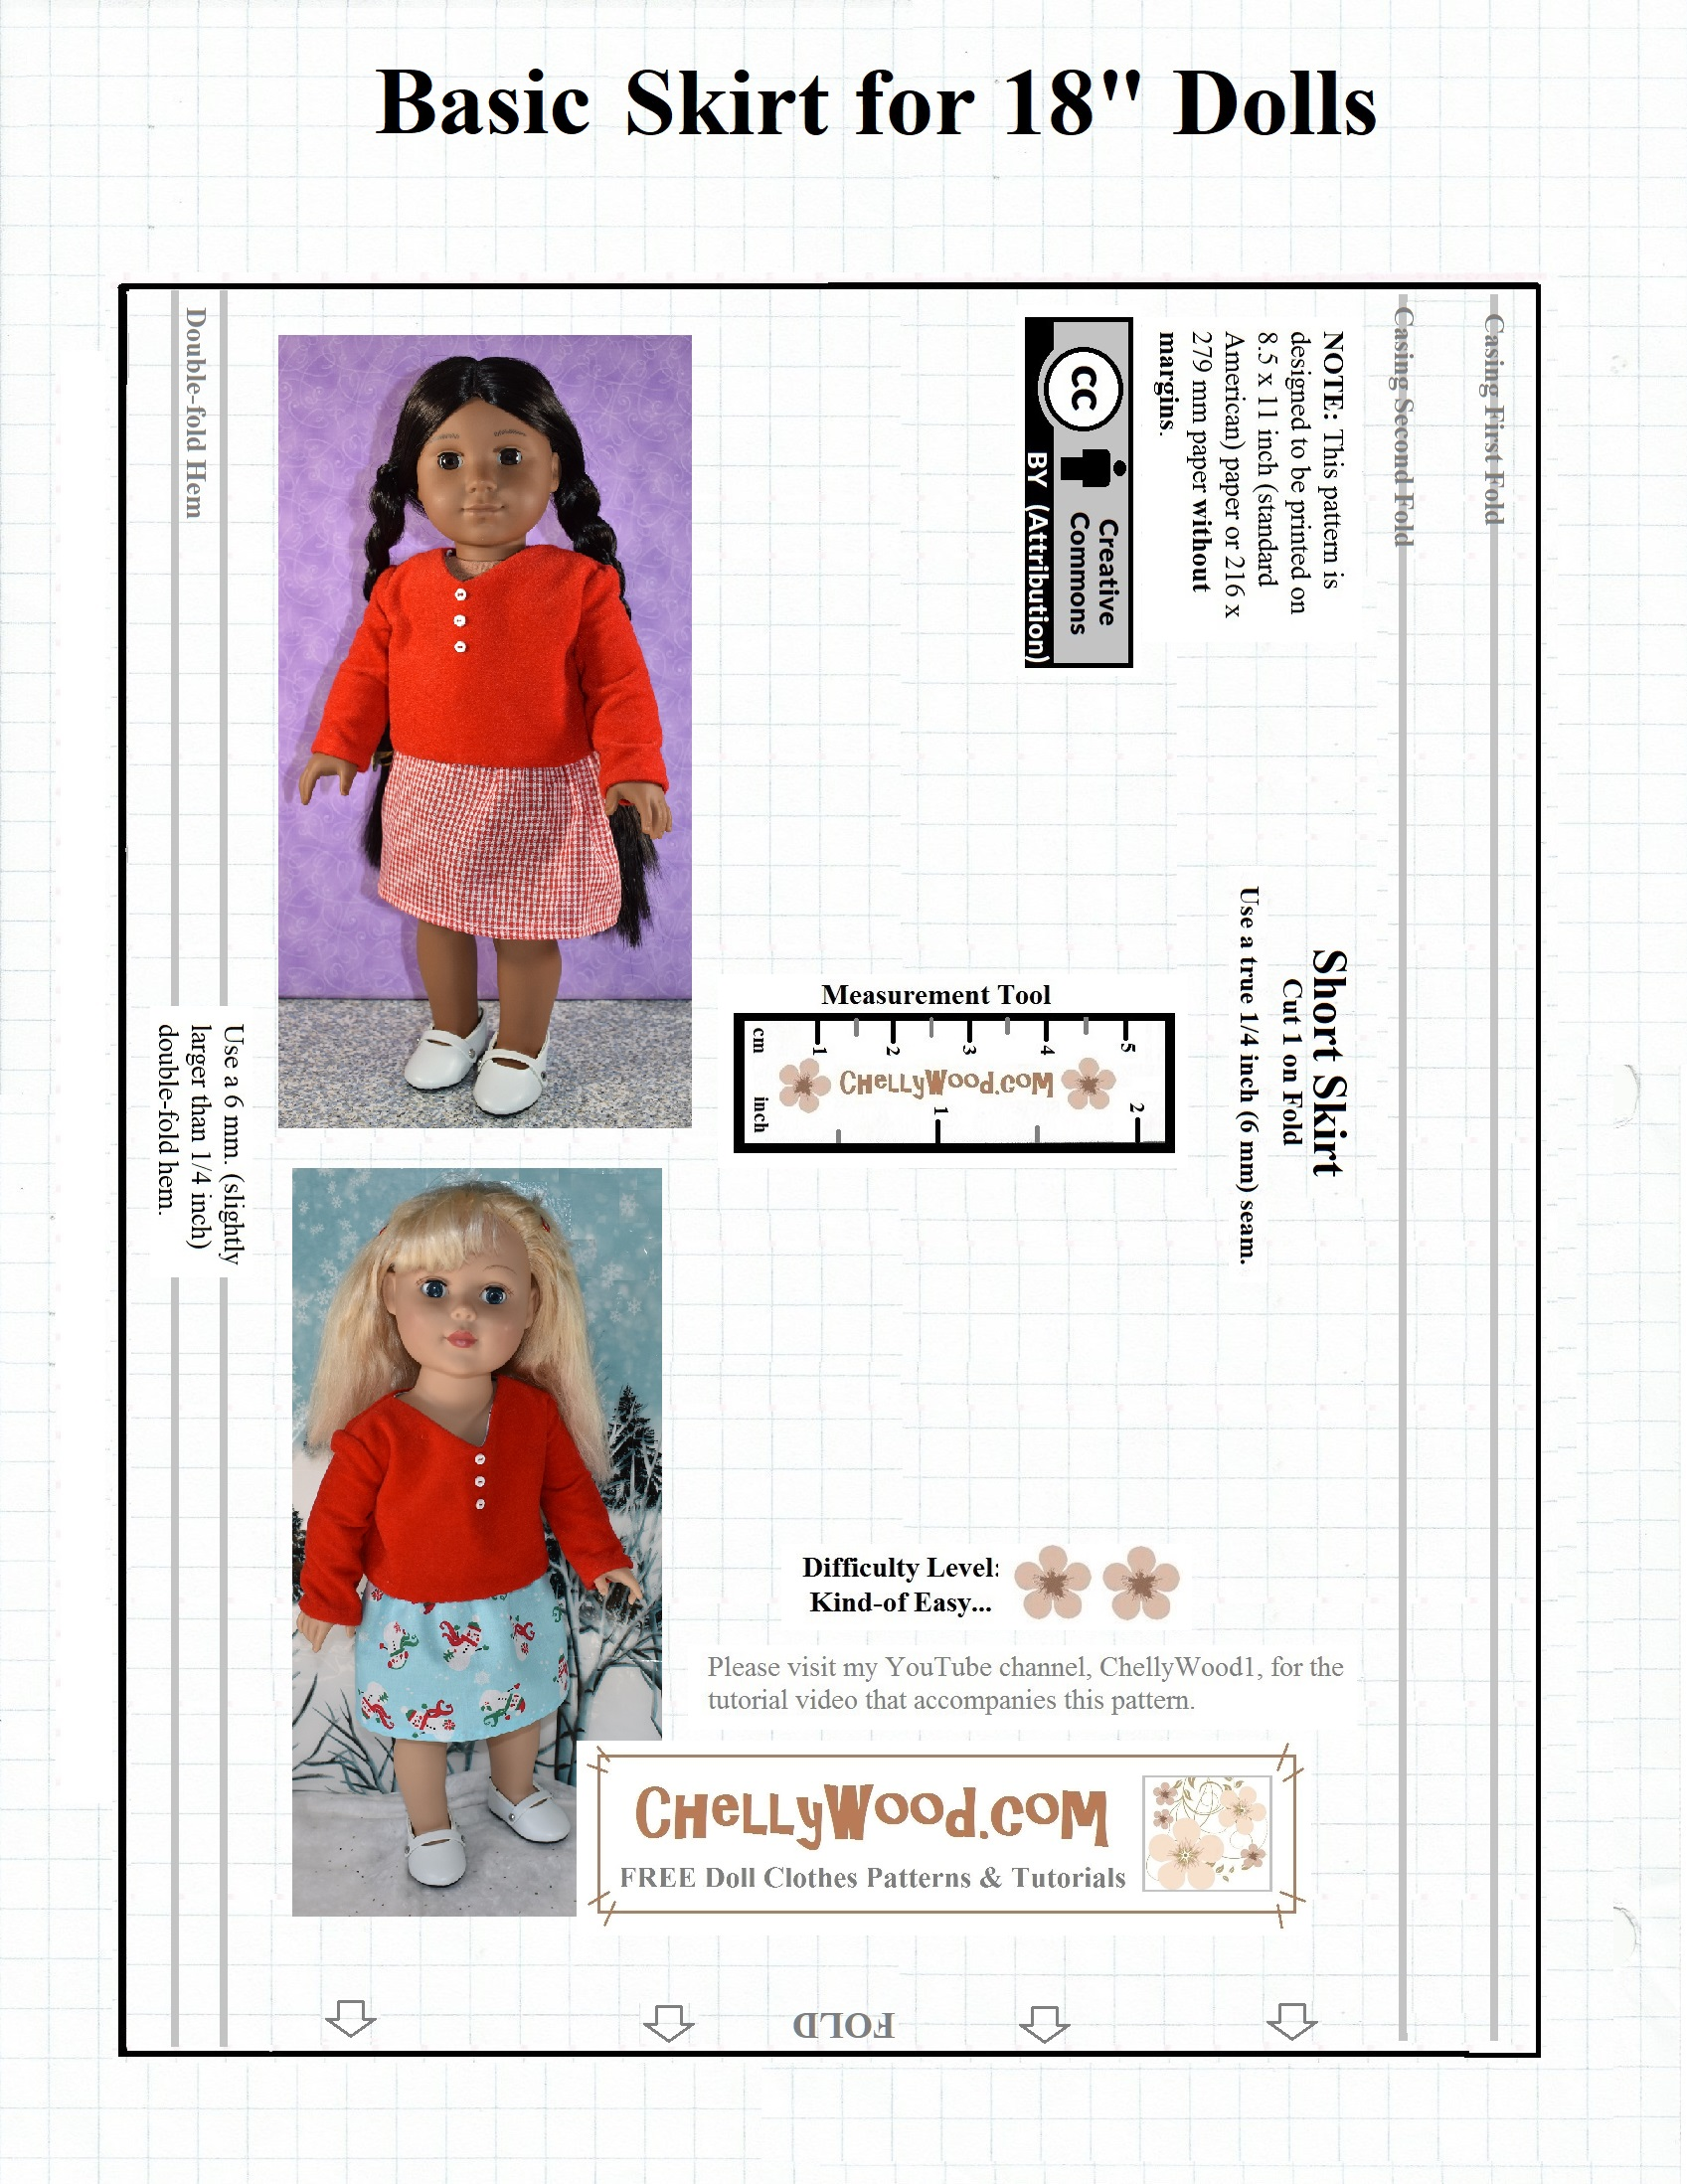 photo about 18 Inch Doll Clothes Patterns Free Printable named Sew a Straightforward Skirt for 18 Dolls w/Totally free Designs @ CyWood